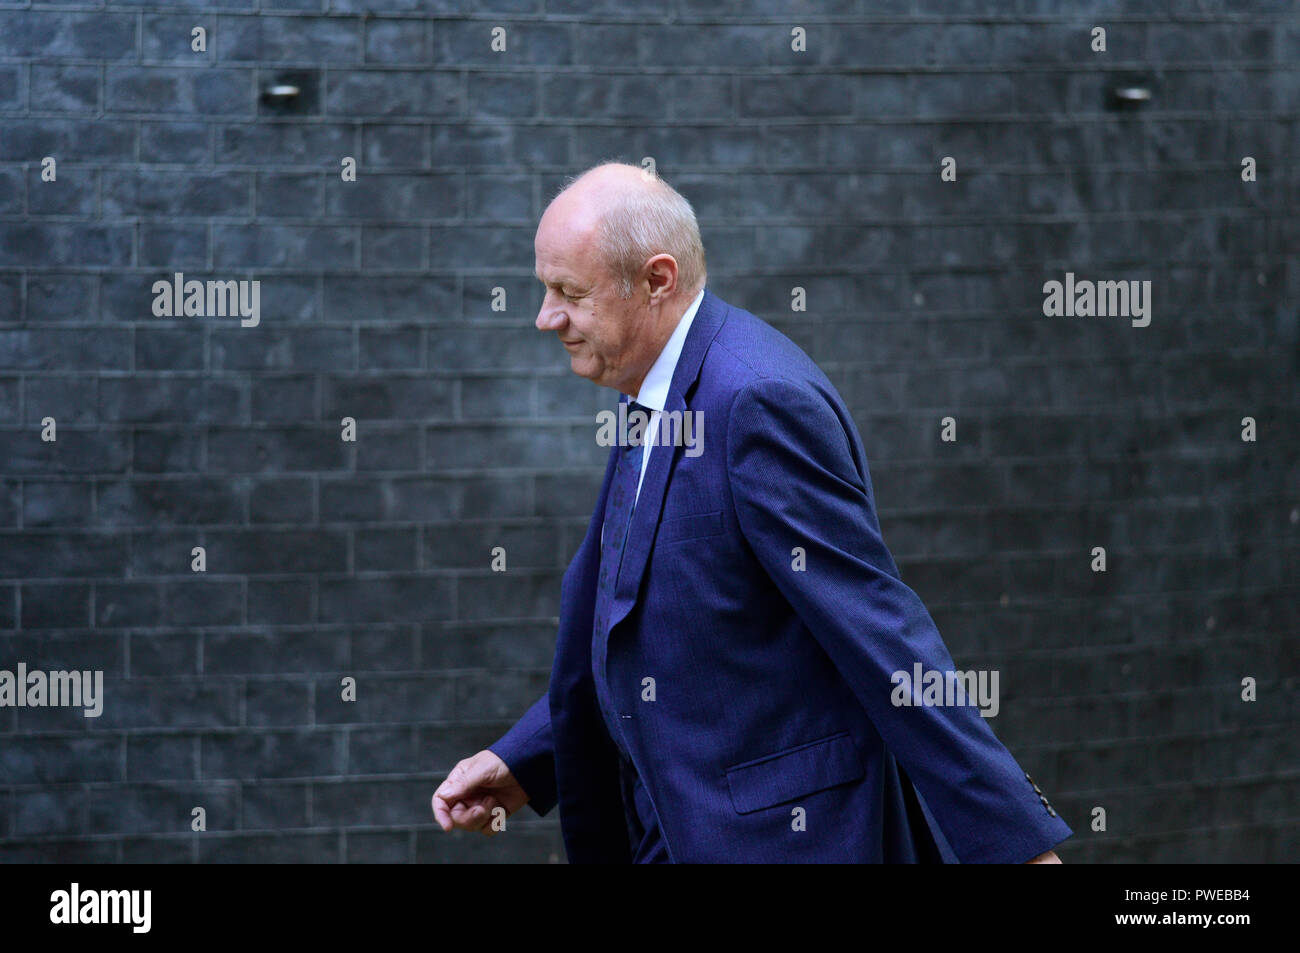 Downing Street, London, UK. 16 October 2018. A steady stream of Conservative MPs and Peers arrive and leave Downing Street for an extended cabinet meeting where Brexit backstop decision is being discussed. Image: MP Damian Green arriving. Credit: Malcolm Park/Alamy Live News. - Stock Image